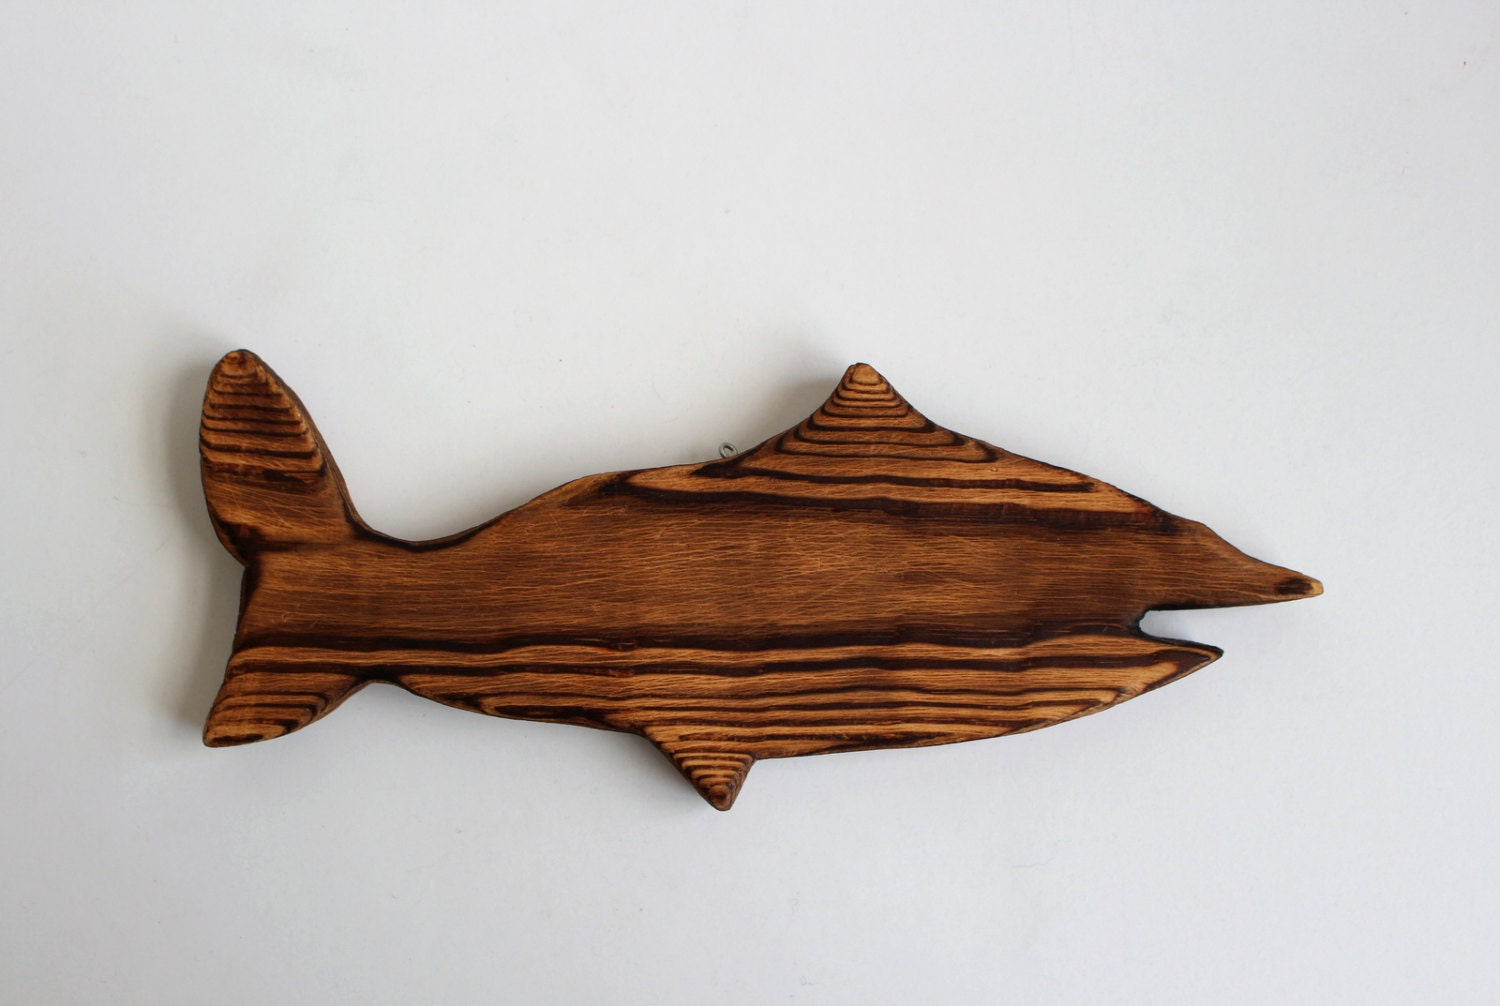 Fish Wall Decor Wood : Vintage wood fish wall decor wooden figurine handmade